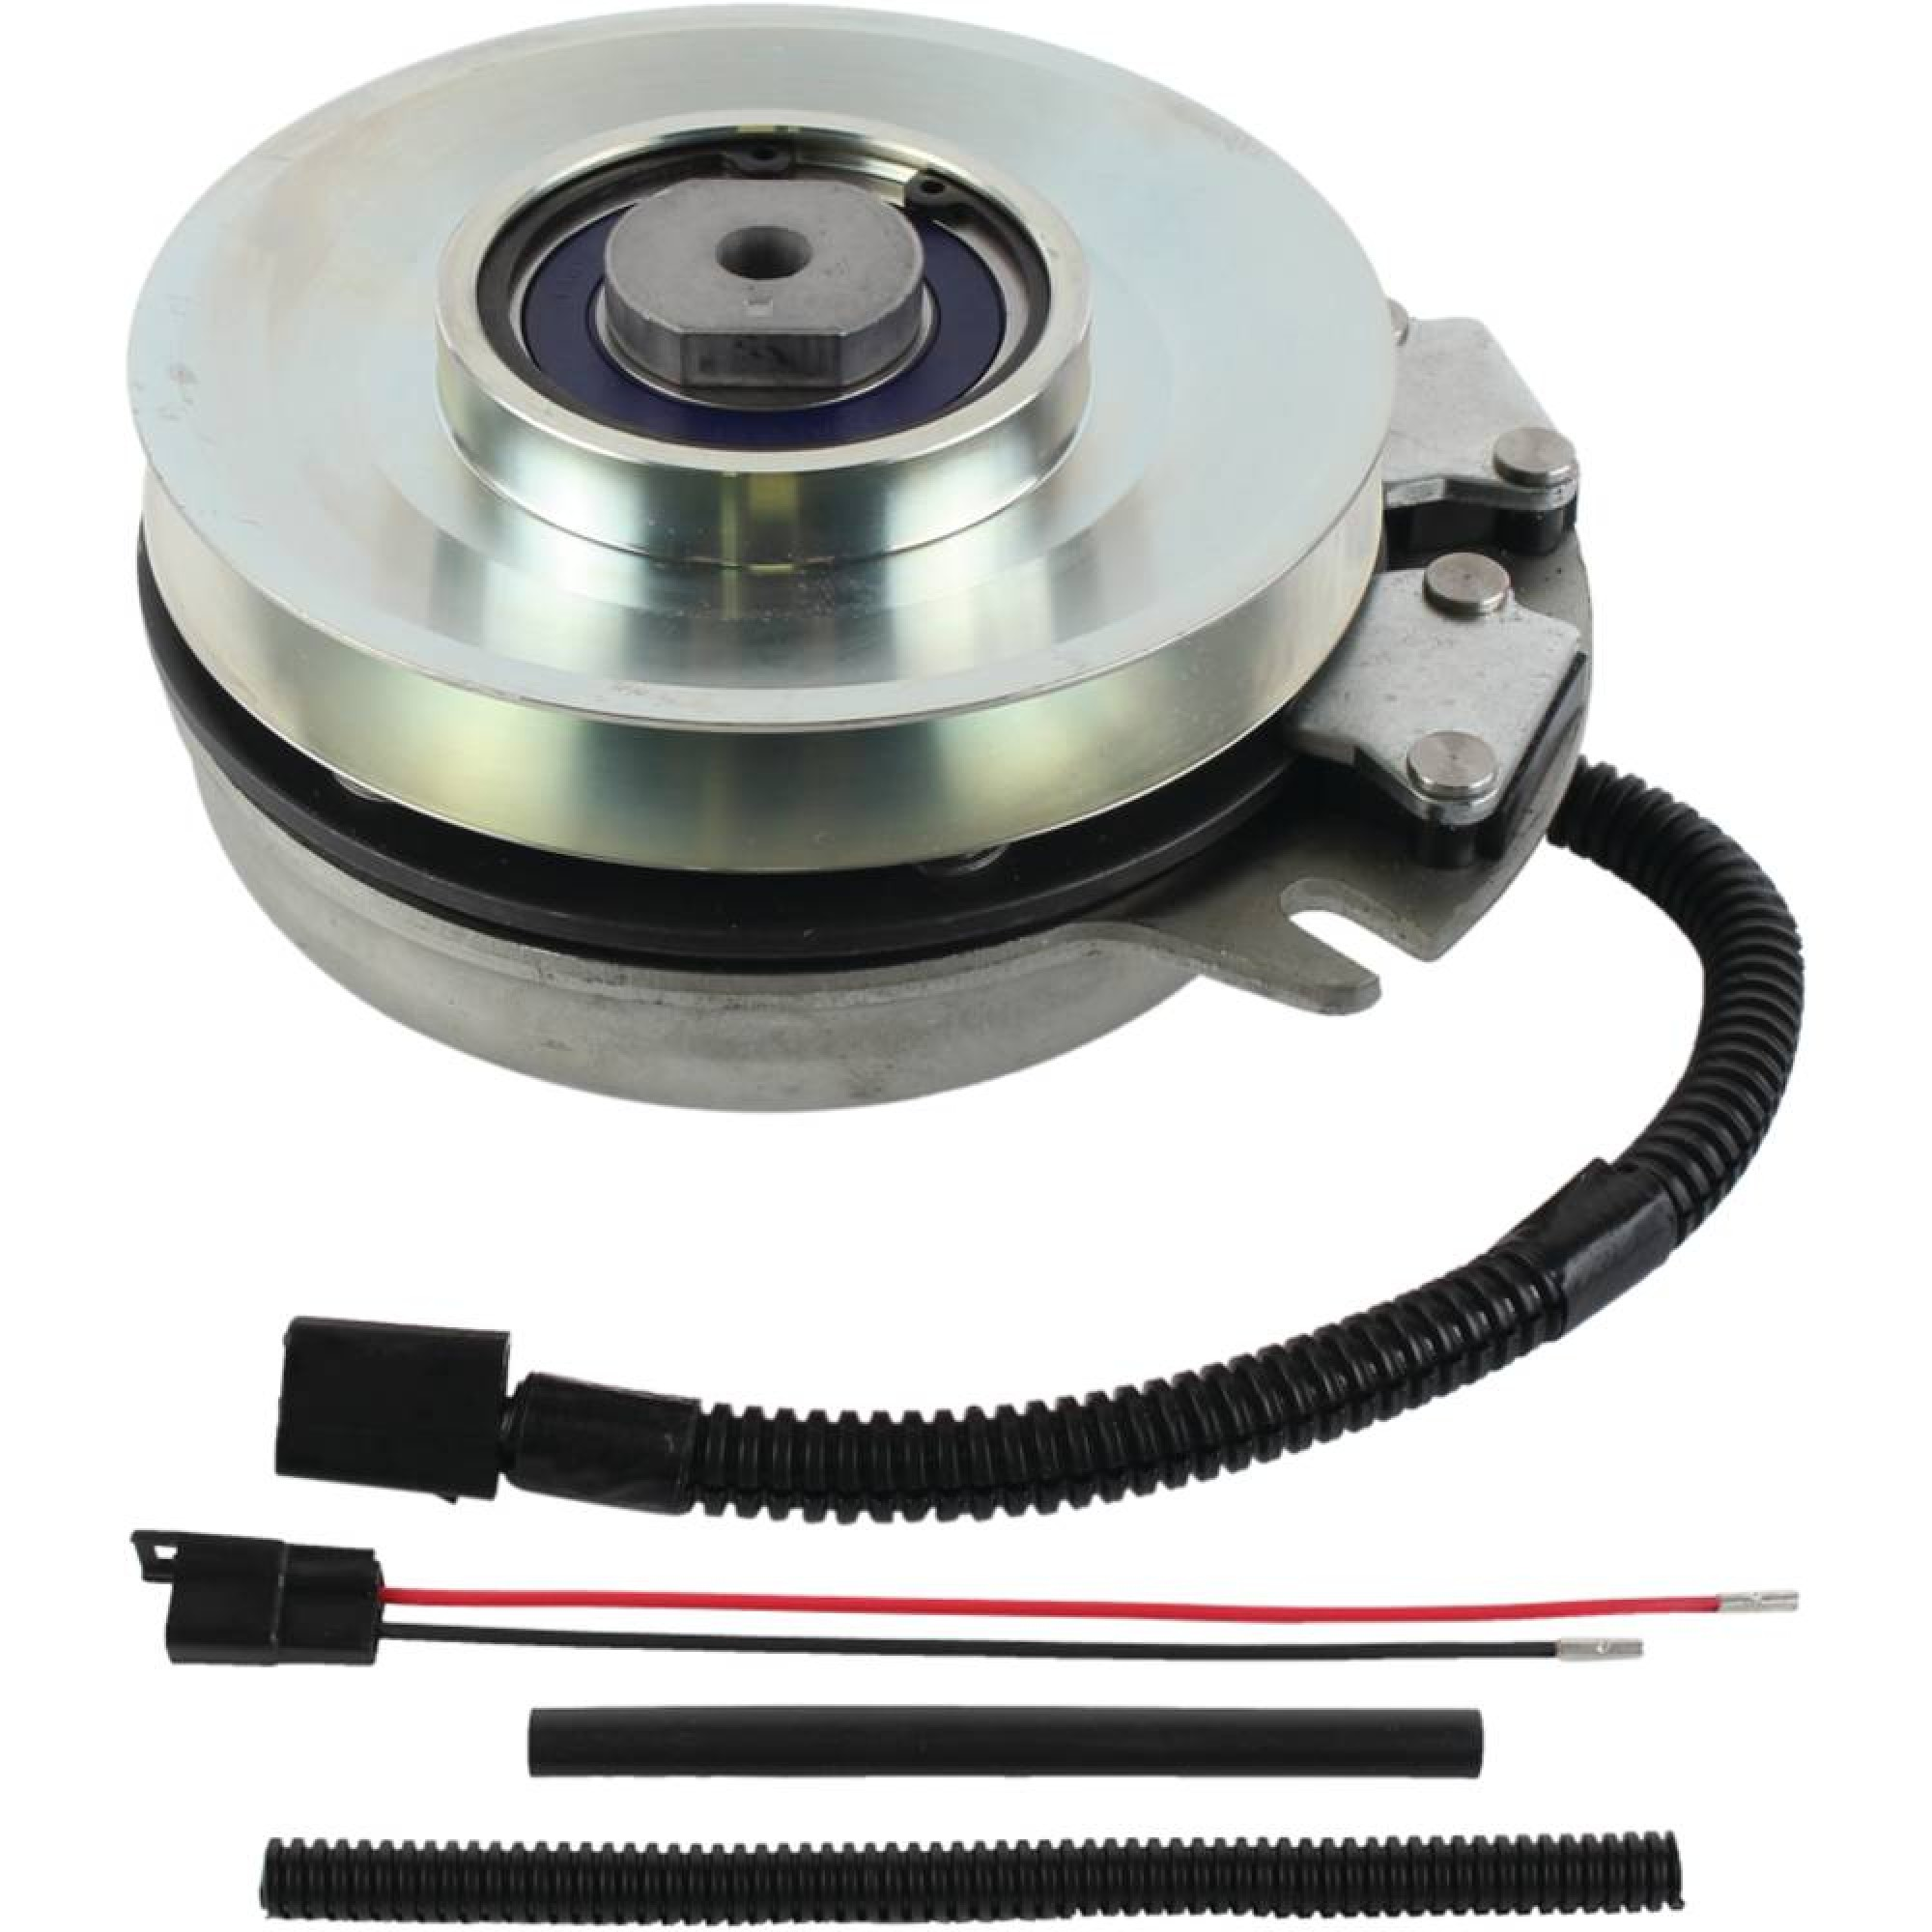 small resolution of xtreme replacement clutch for wright stander 71410001 with wire harness repair kit xtreme outdoor power equipment